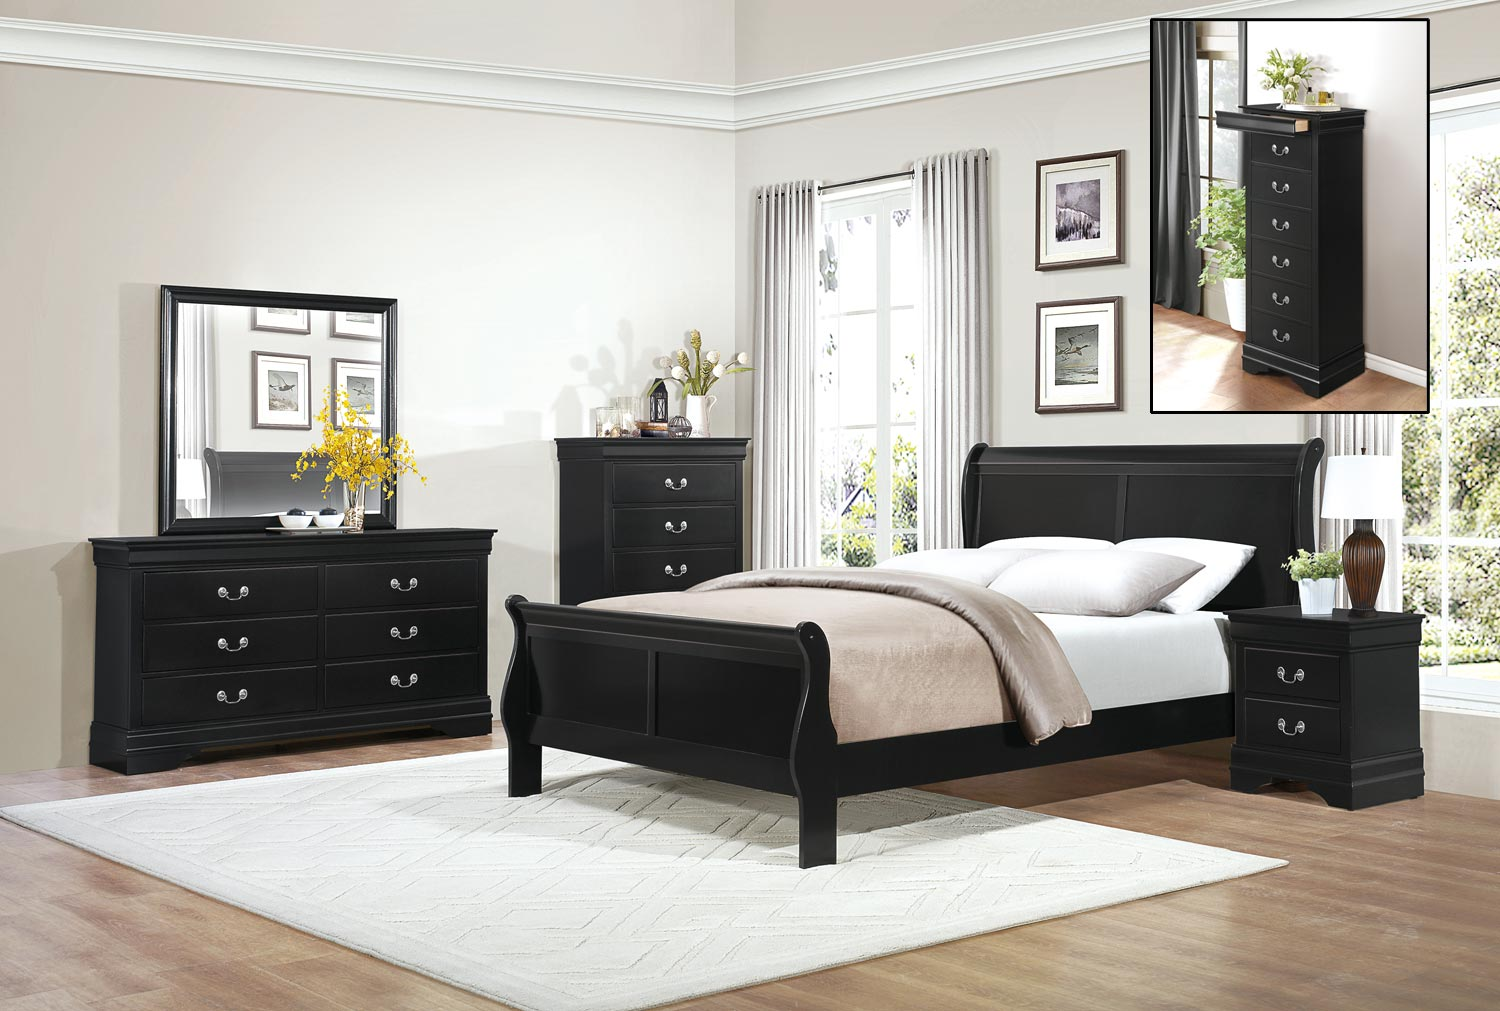 black bedroom furniture set | Homelegance Mayville Bedroom Set - Black 2147BK-BEDROOM ...